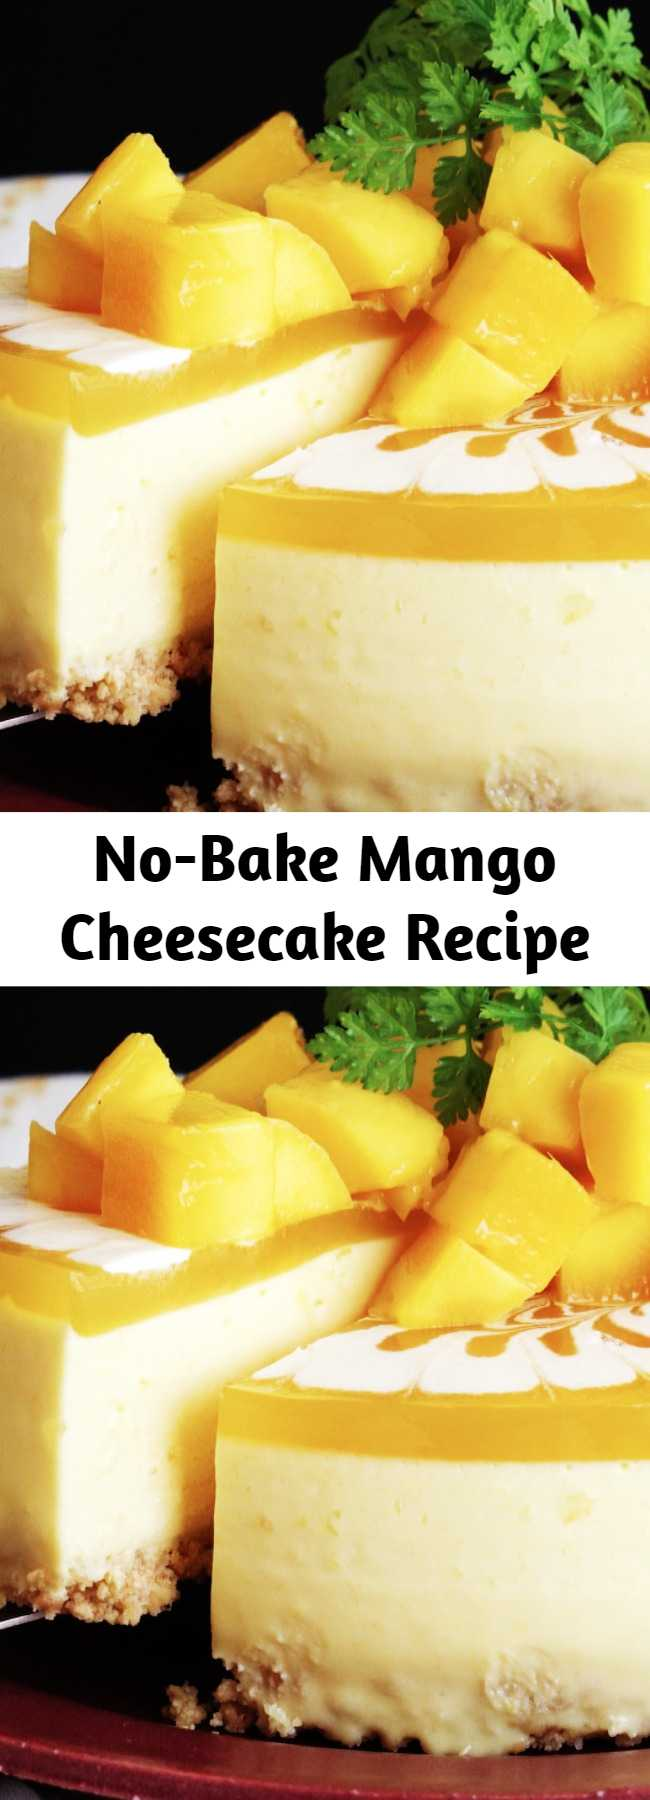 No-Bake Mango Cheesecake Recipe - Let this Mango Cheesecake take you to sweet, fruit paradise. Super easy and no bake makes this the perfect summer dessert.